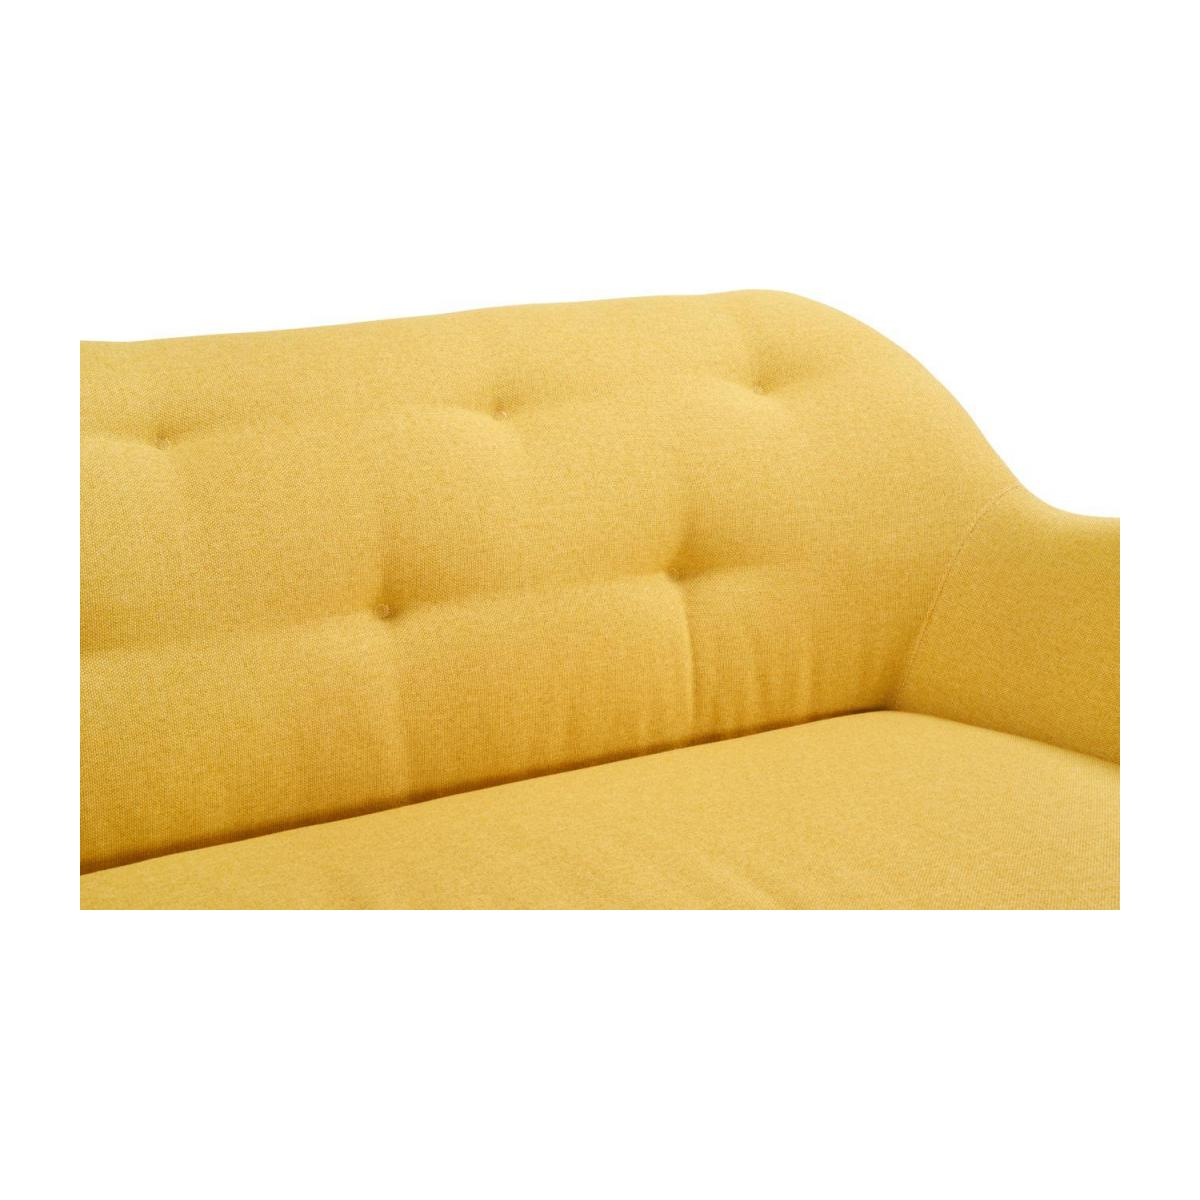 3-seat sofa made of fabric, yellow n°5